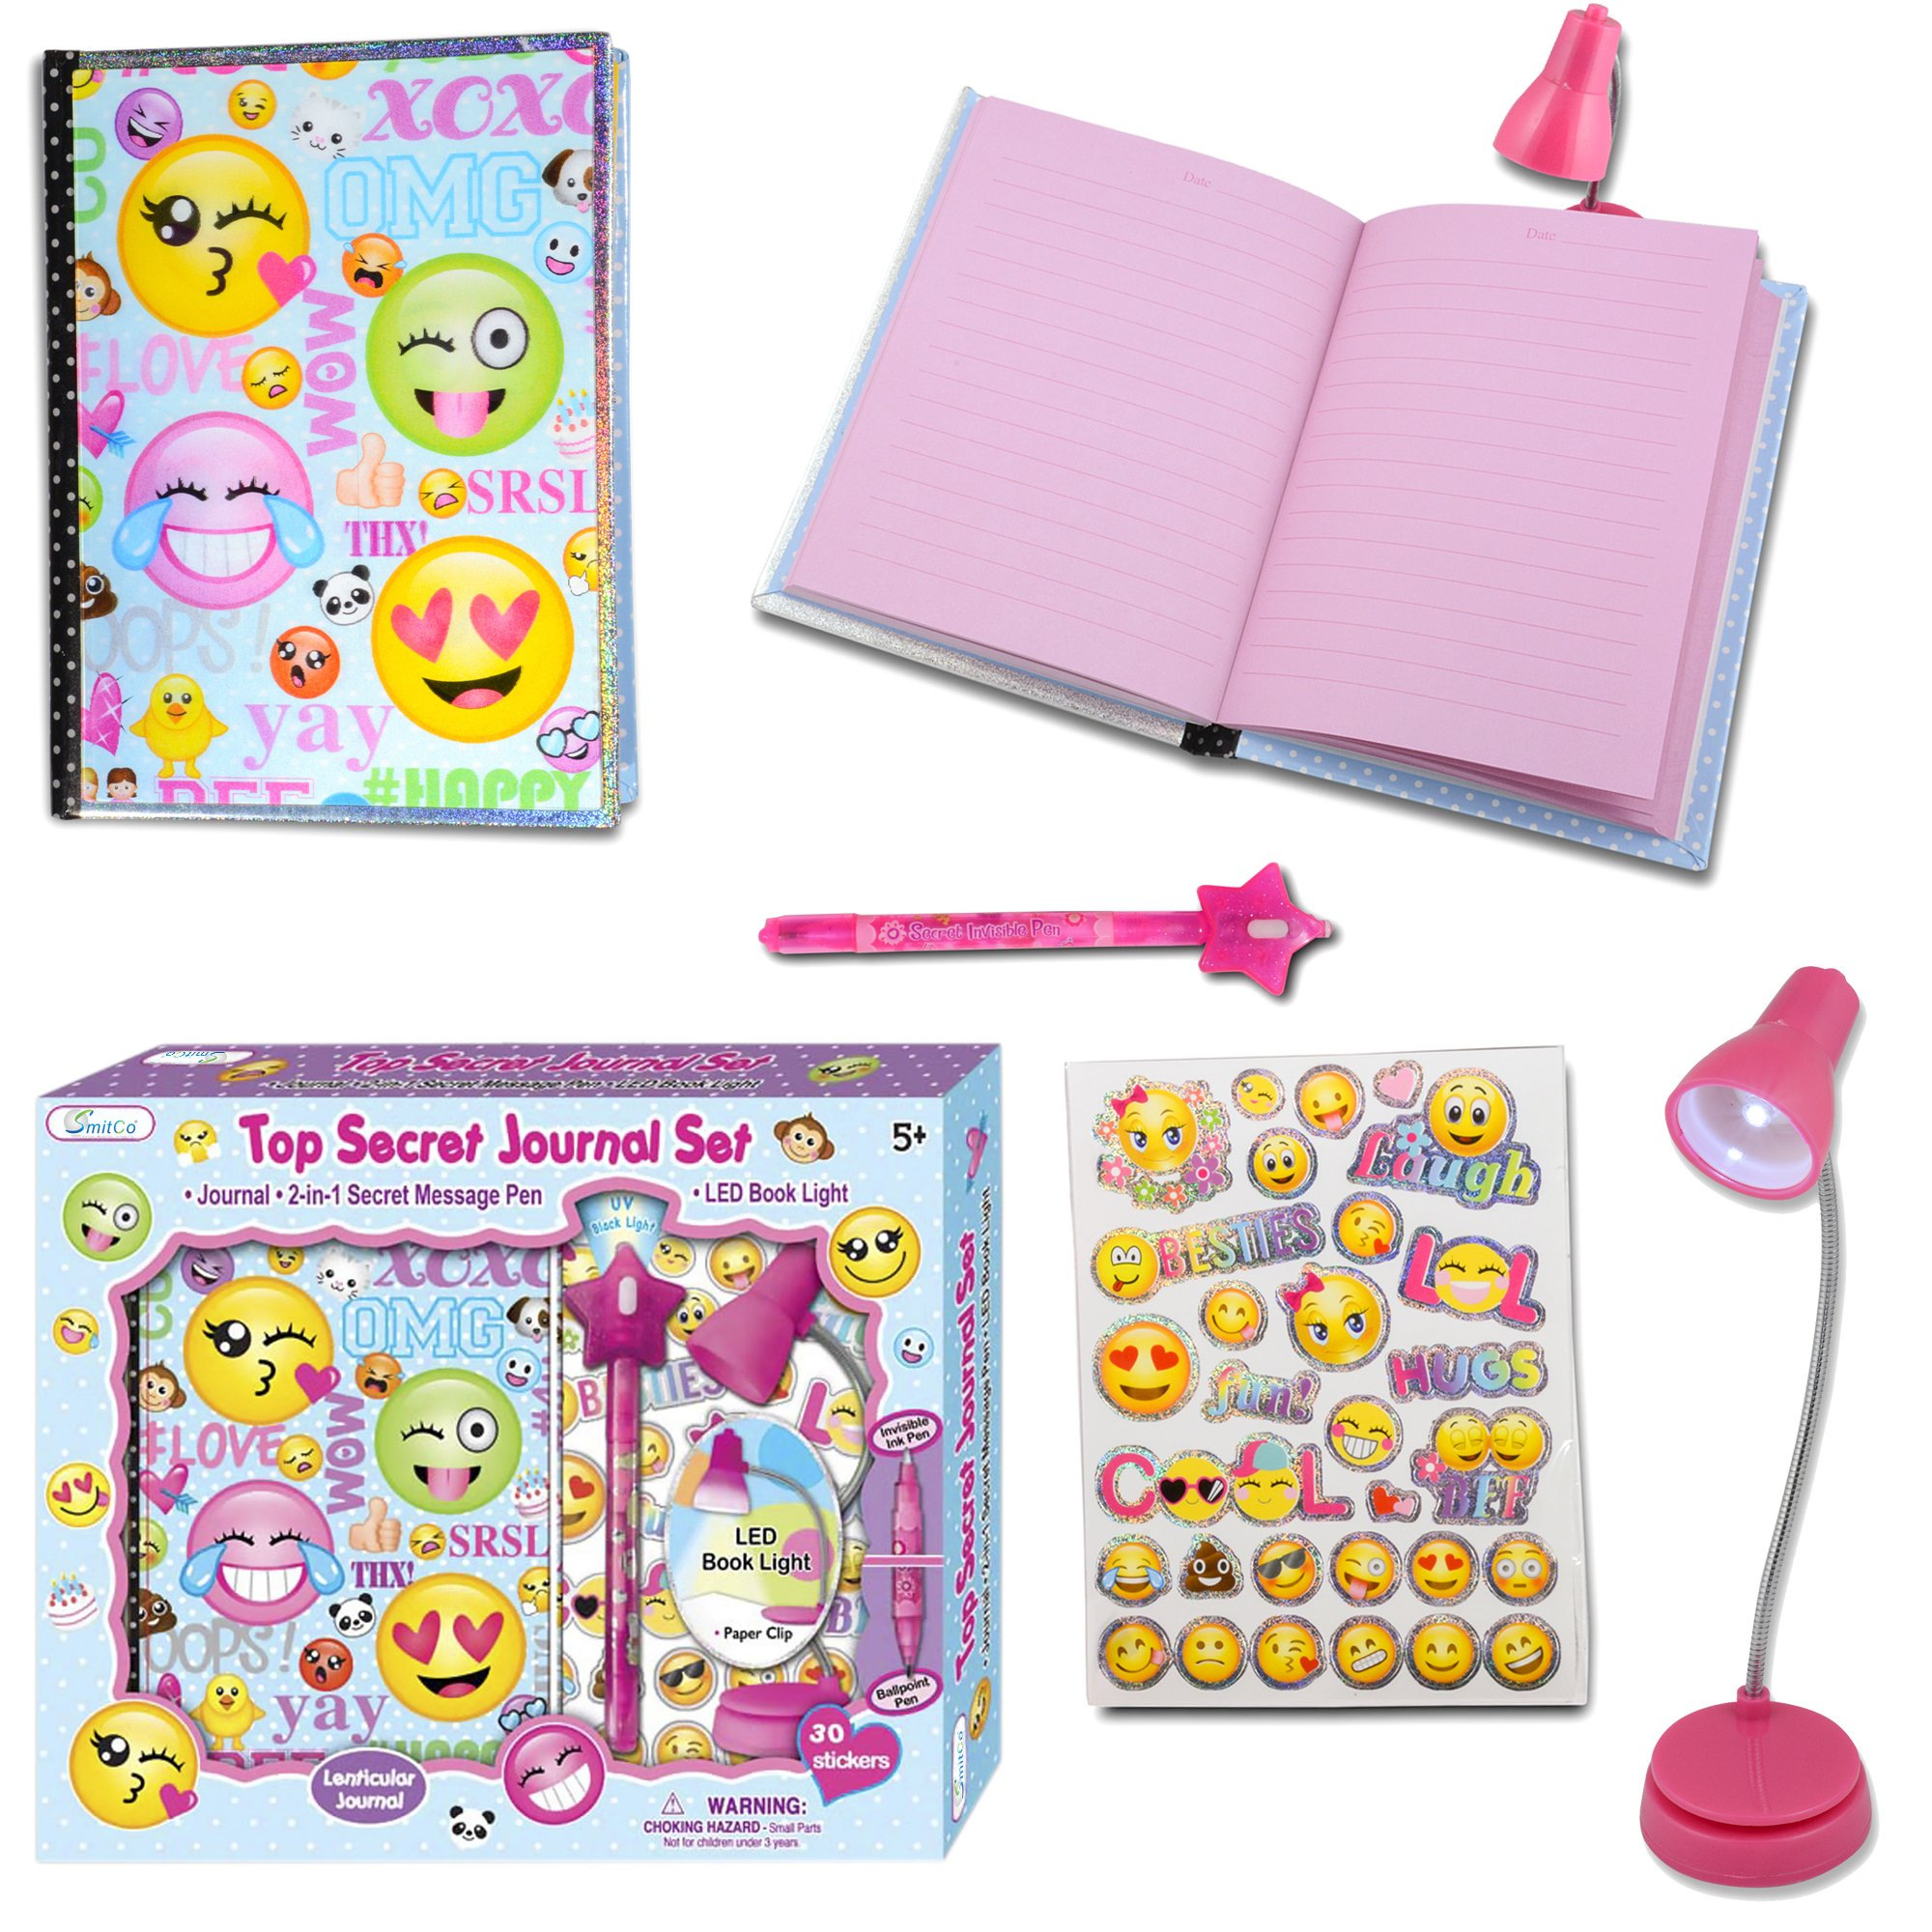 SMITCO Girl Diary - Cute Emoji Lined Journal Birthday Gift Set for 5 to 10 Year Old Kids with Invisible Ink Pen and Clip On LED Light to Keep Her Secrets Safe - First Diaries are A Treasure